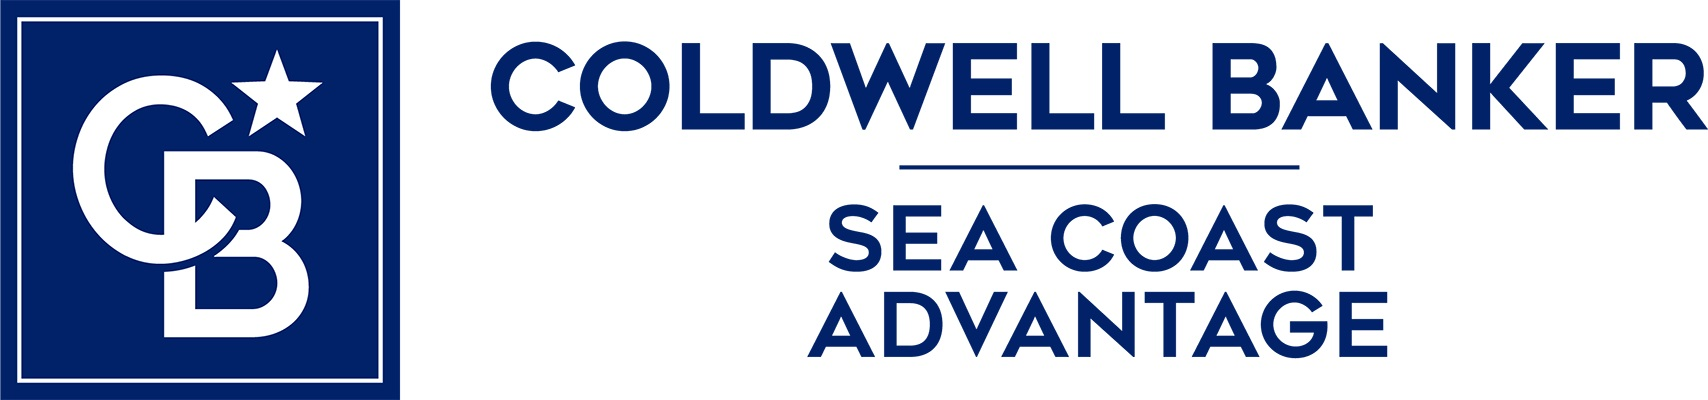 Ben Styers - Coldwell Banker Sea Coast Advantage Realty Logo